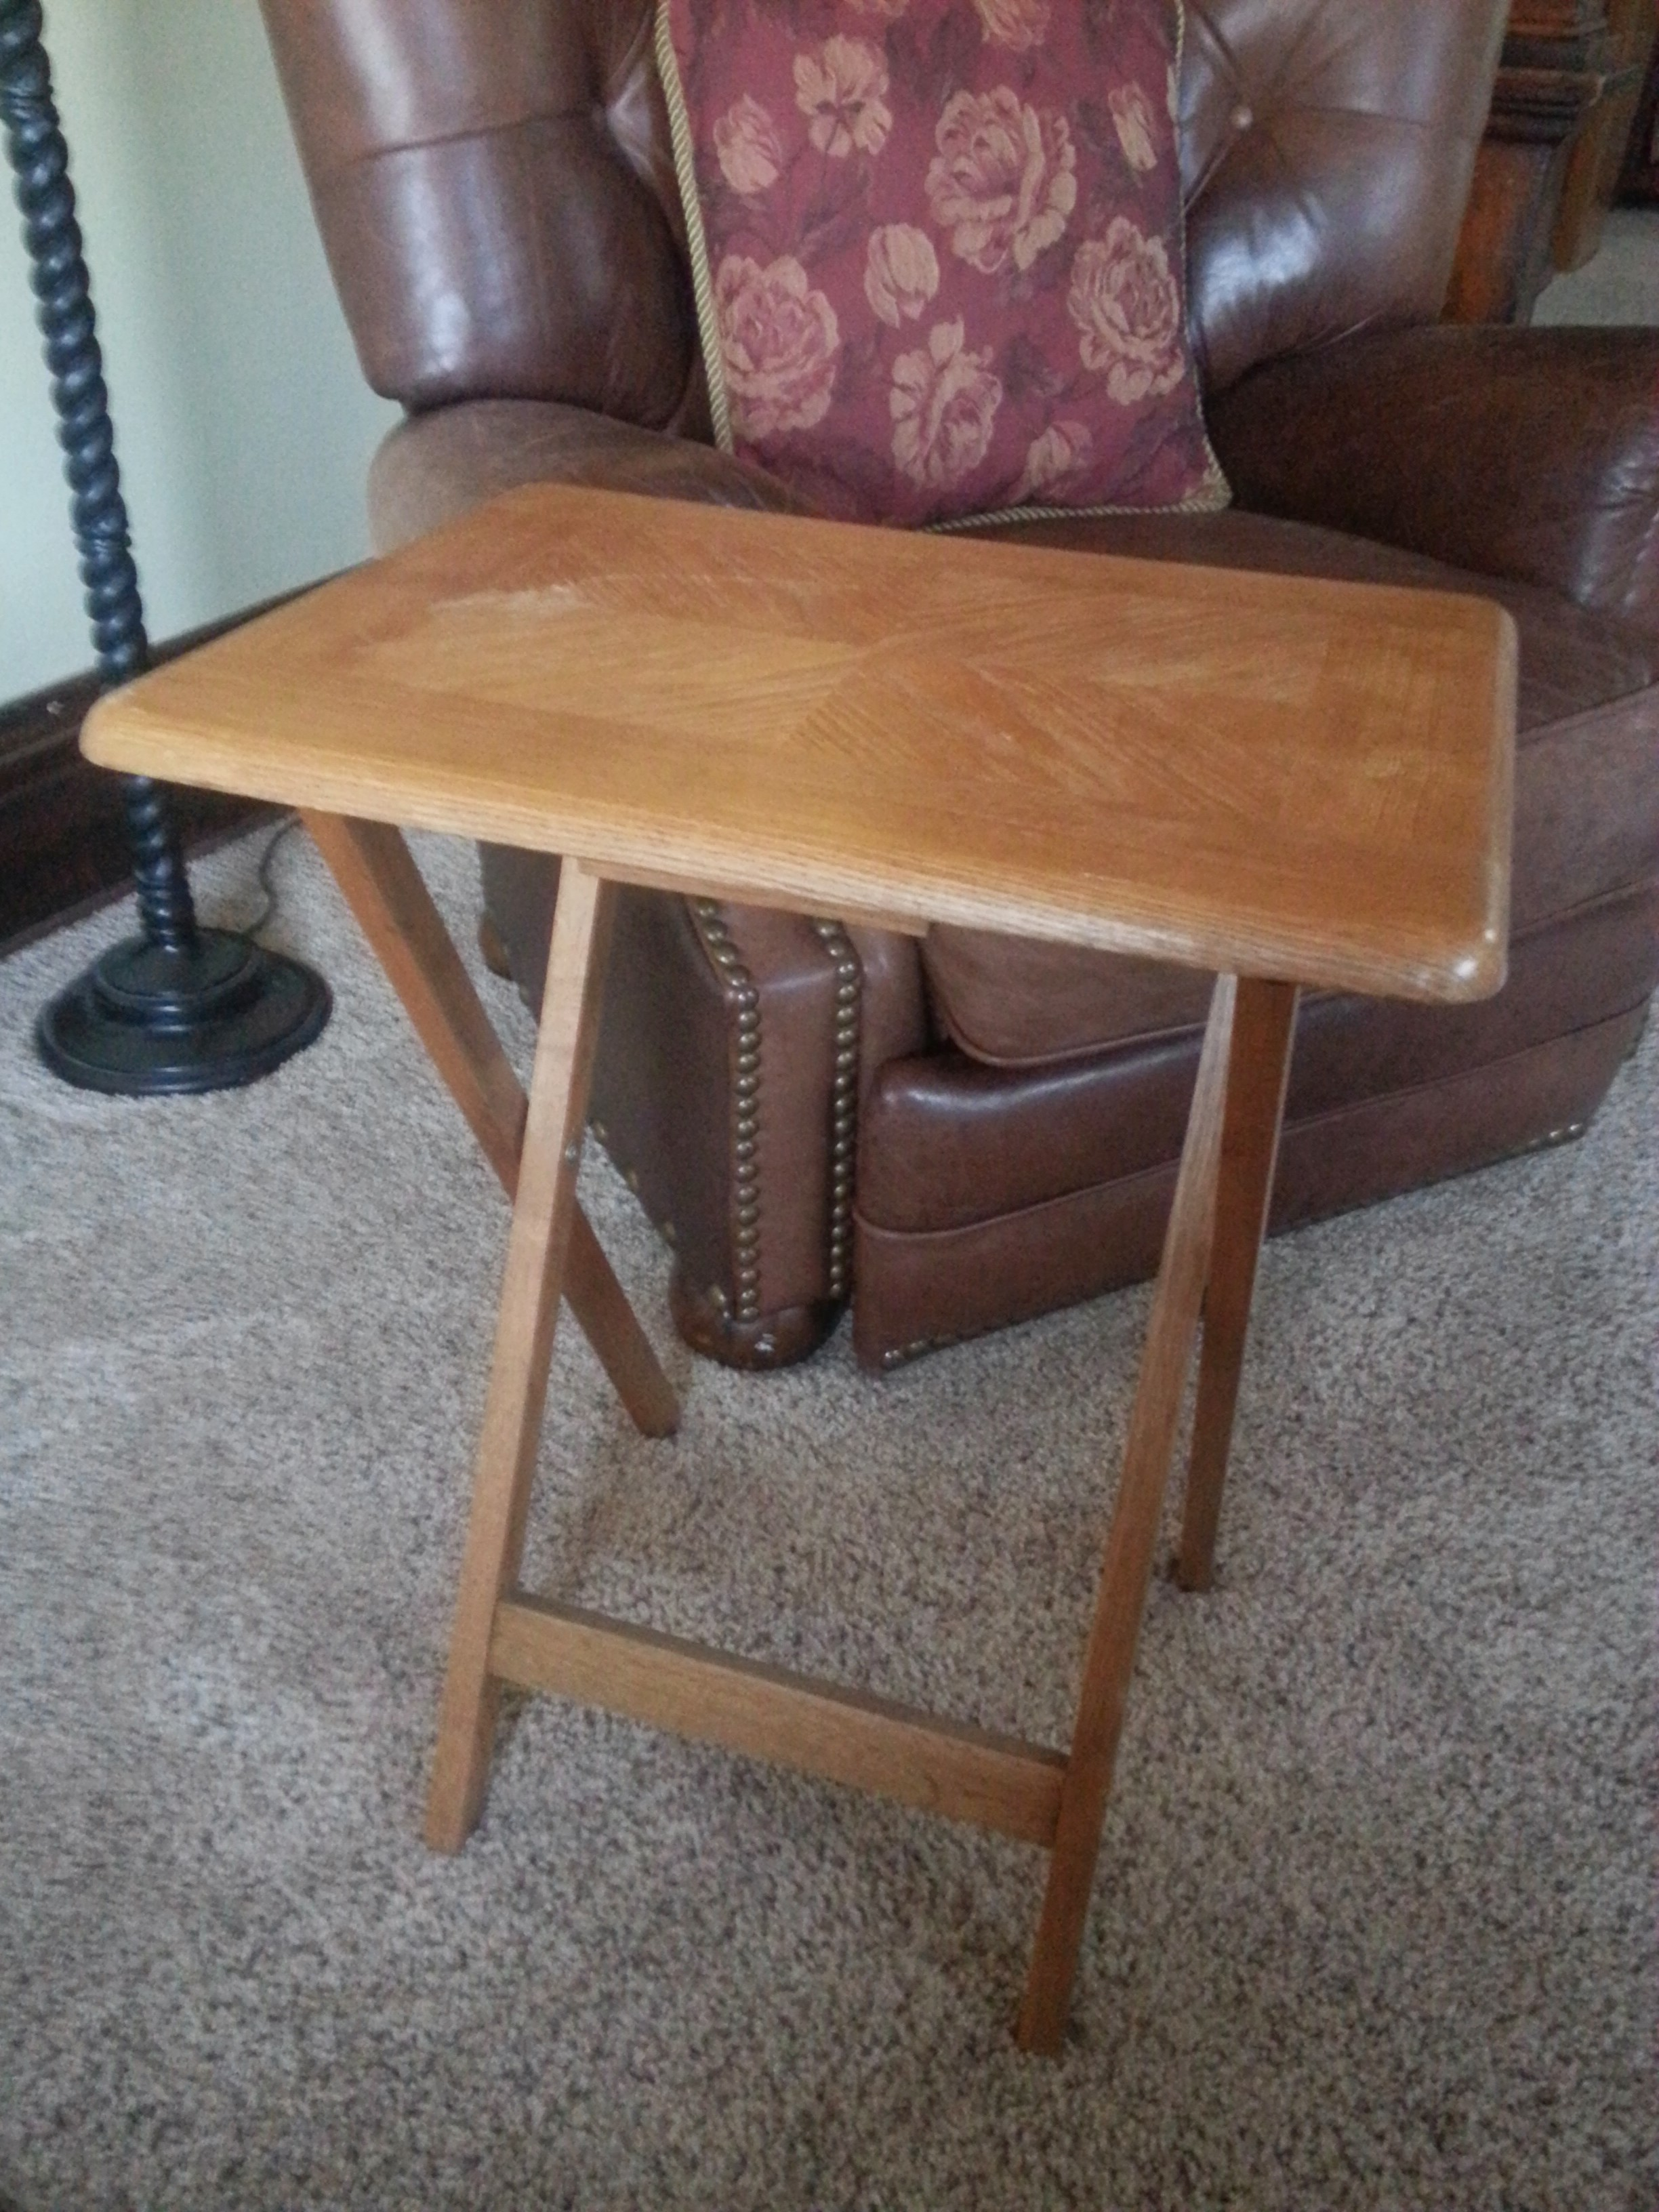 4 Solid Wood TV Trays with Carrier